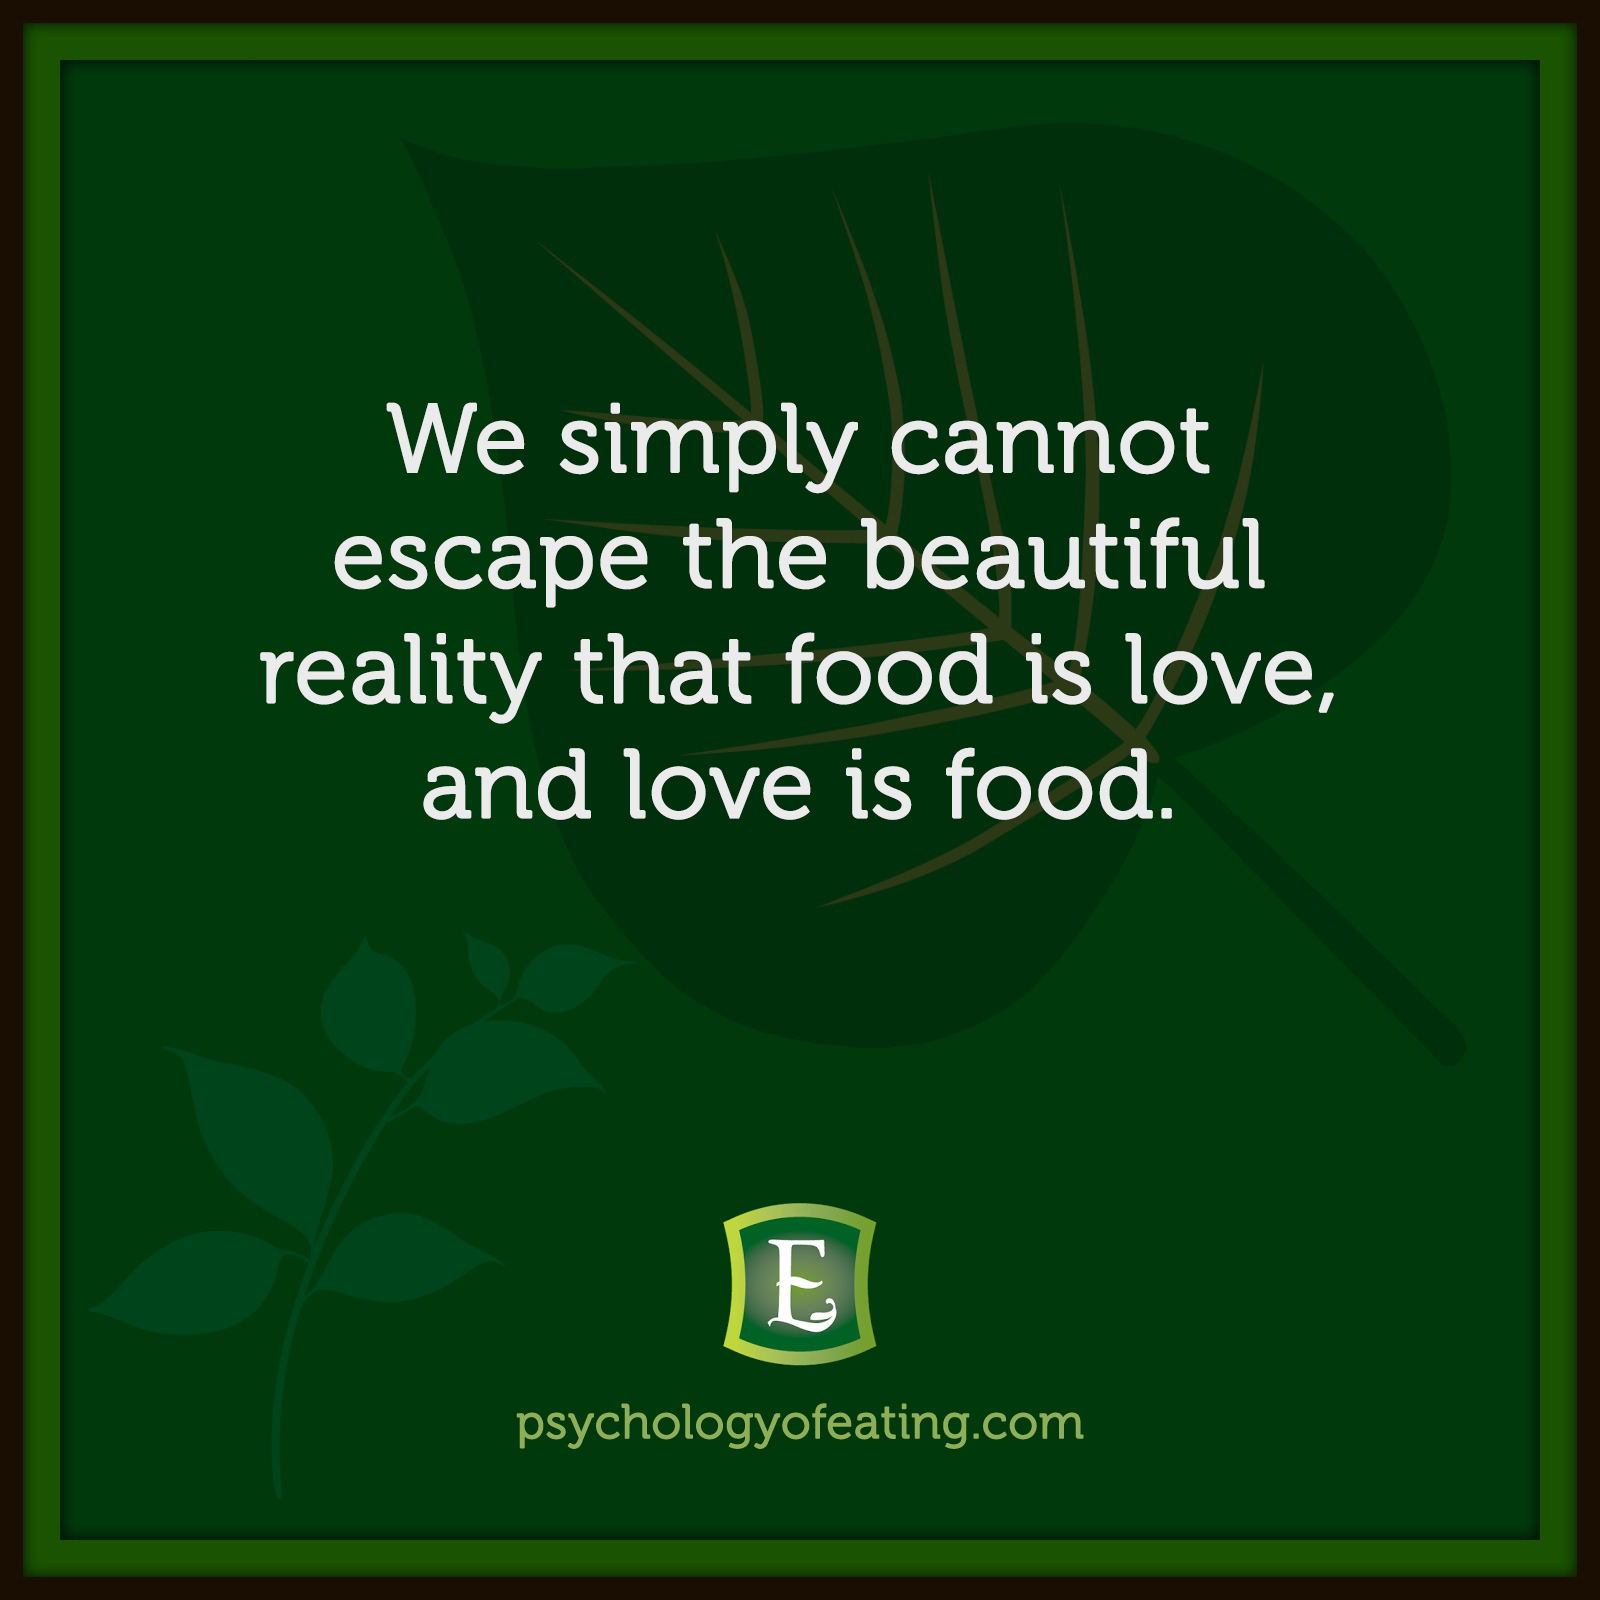 We simply cannot escape the beautiful reality that food is love, and love is food. #health #nutrition #eatingpsychology #IPE